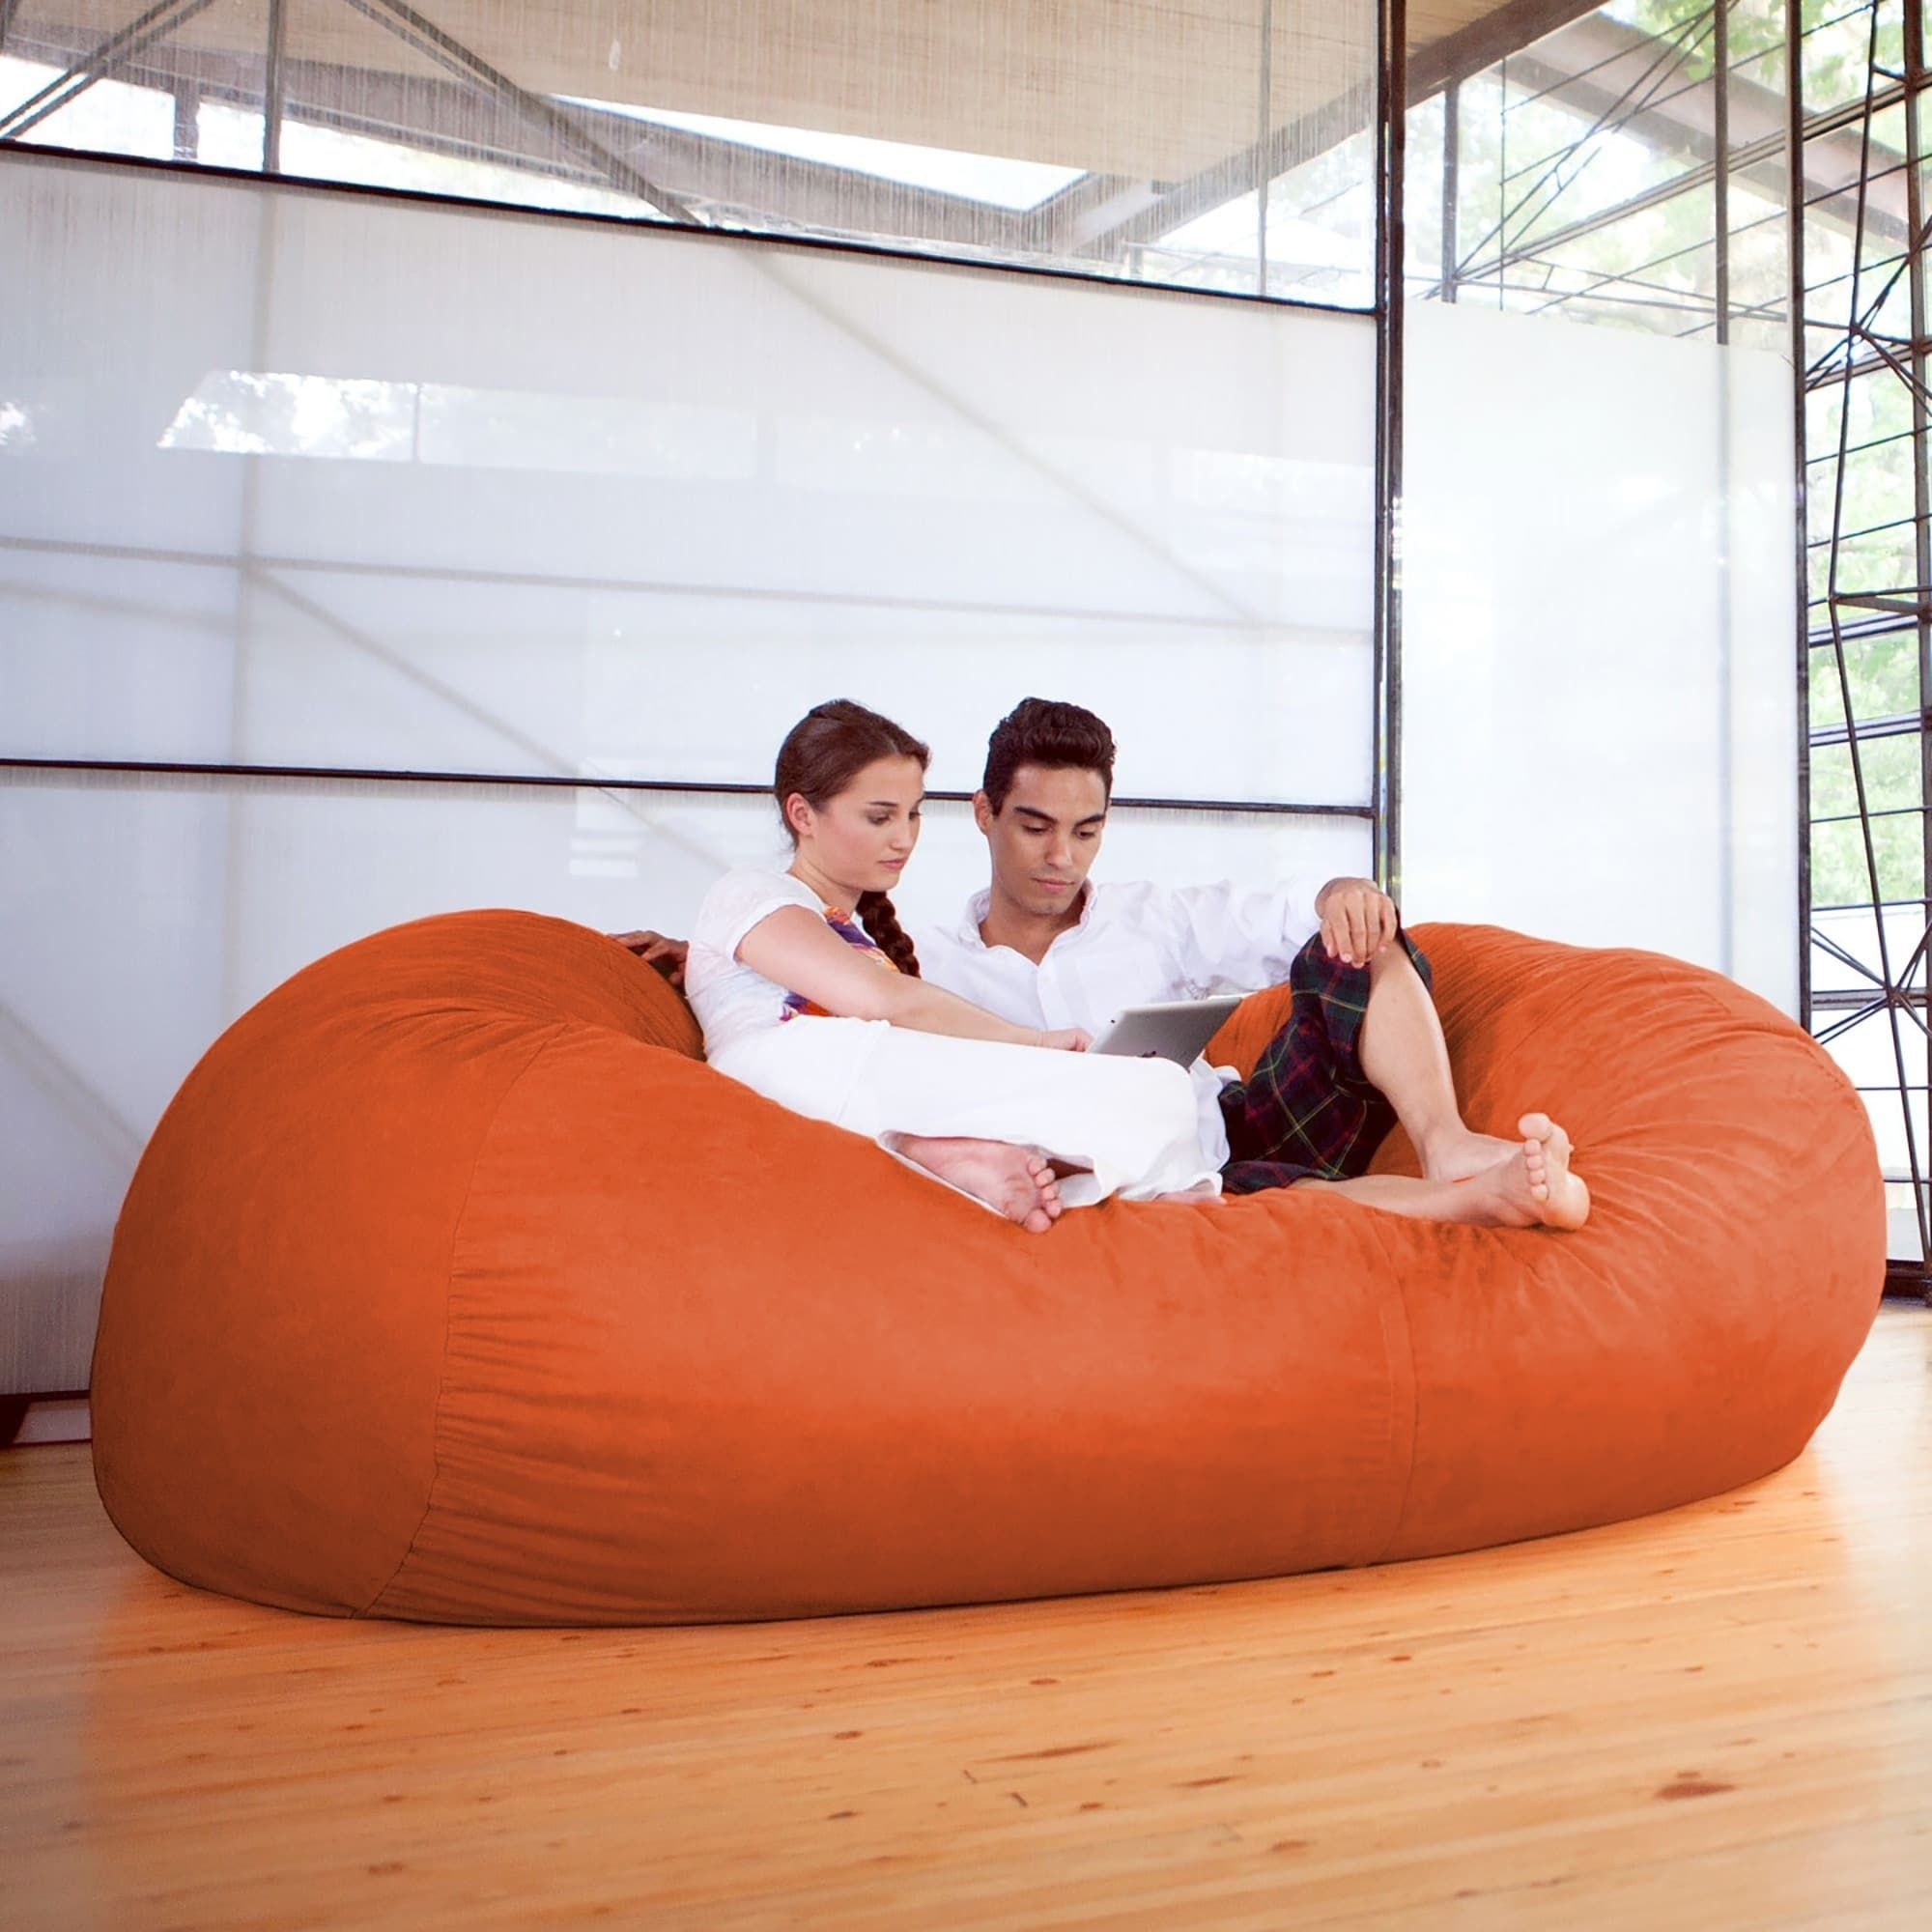 Superb Jaxx 7 Bean Bag Sofa Charcoal Black Jaxx Bean Bags Inzonedesignstudio Interior Chair Design Inzonedesignstudiocom